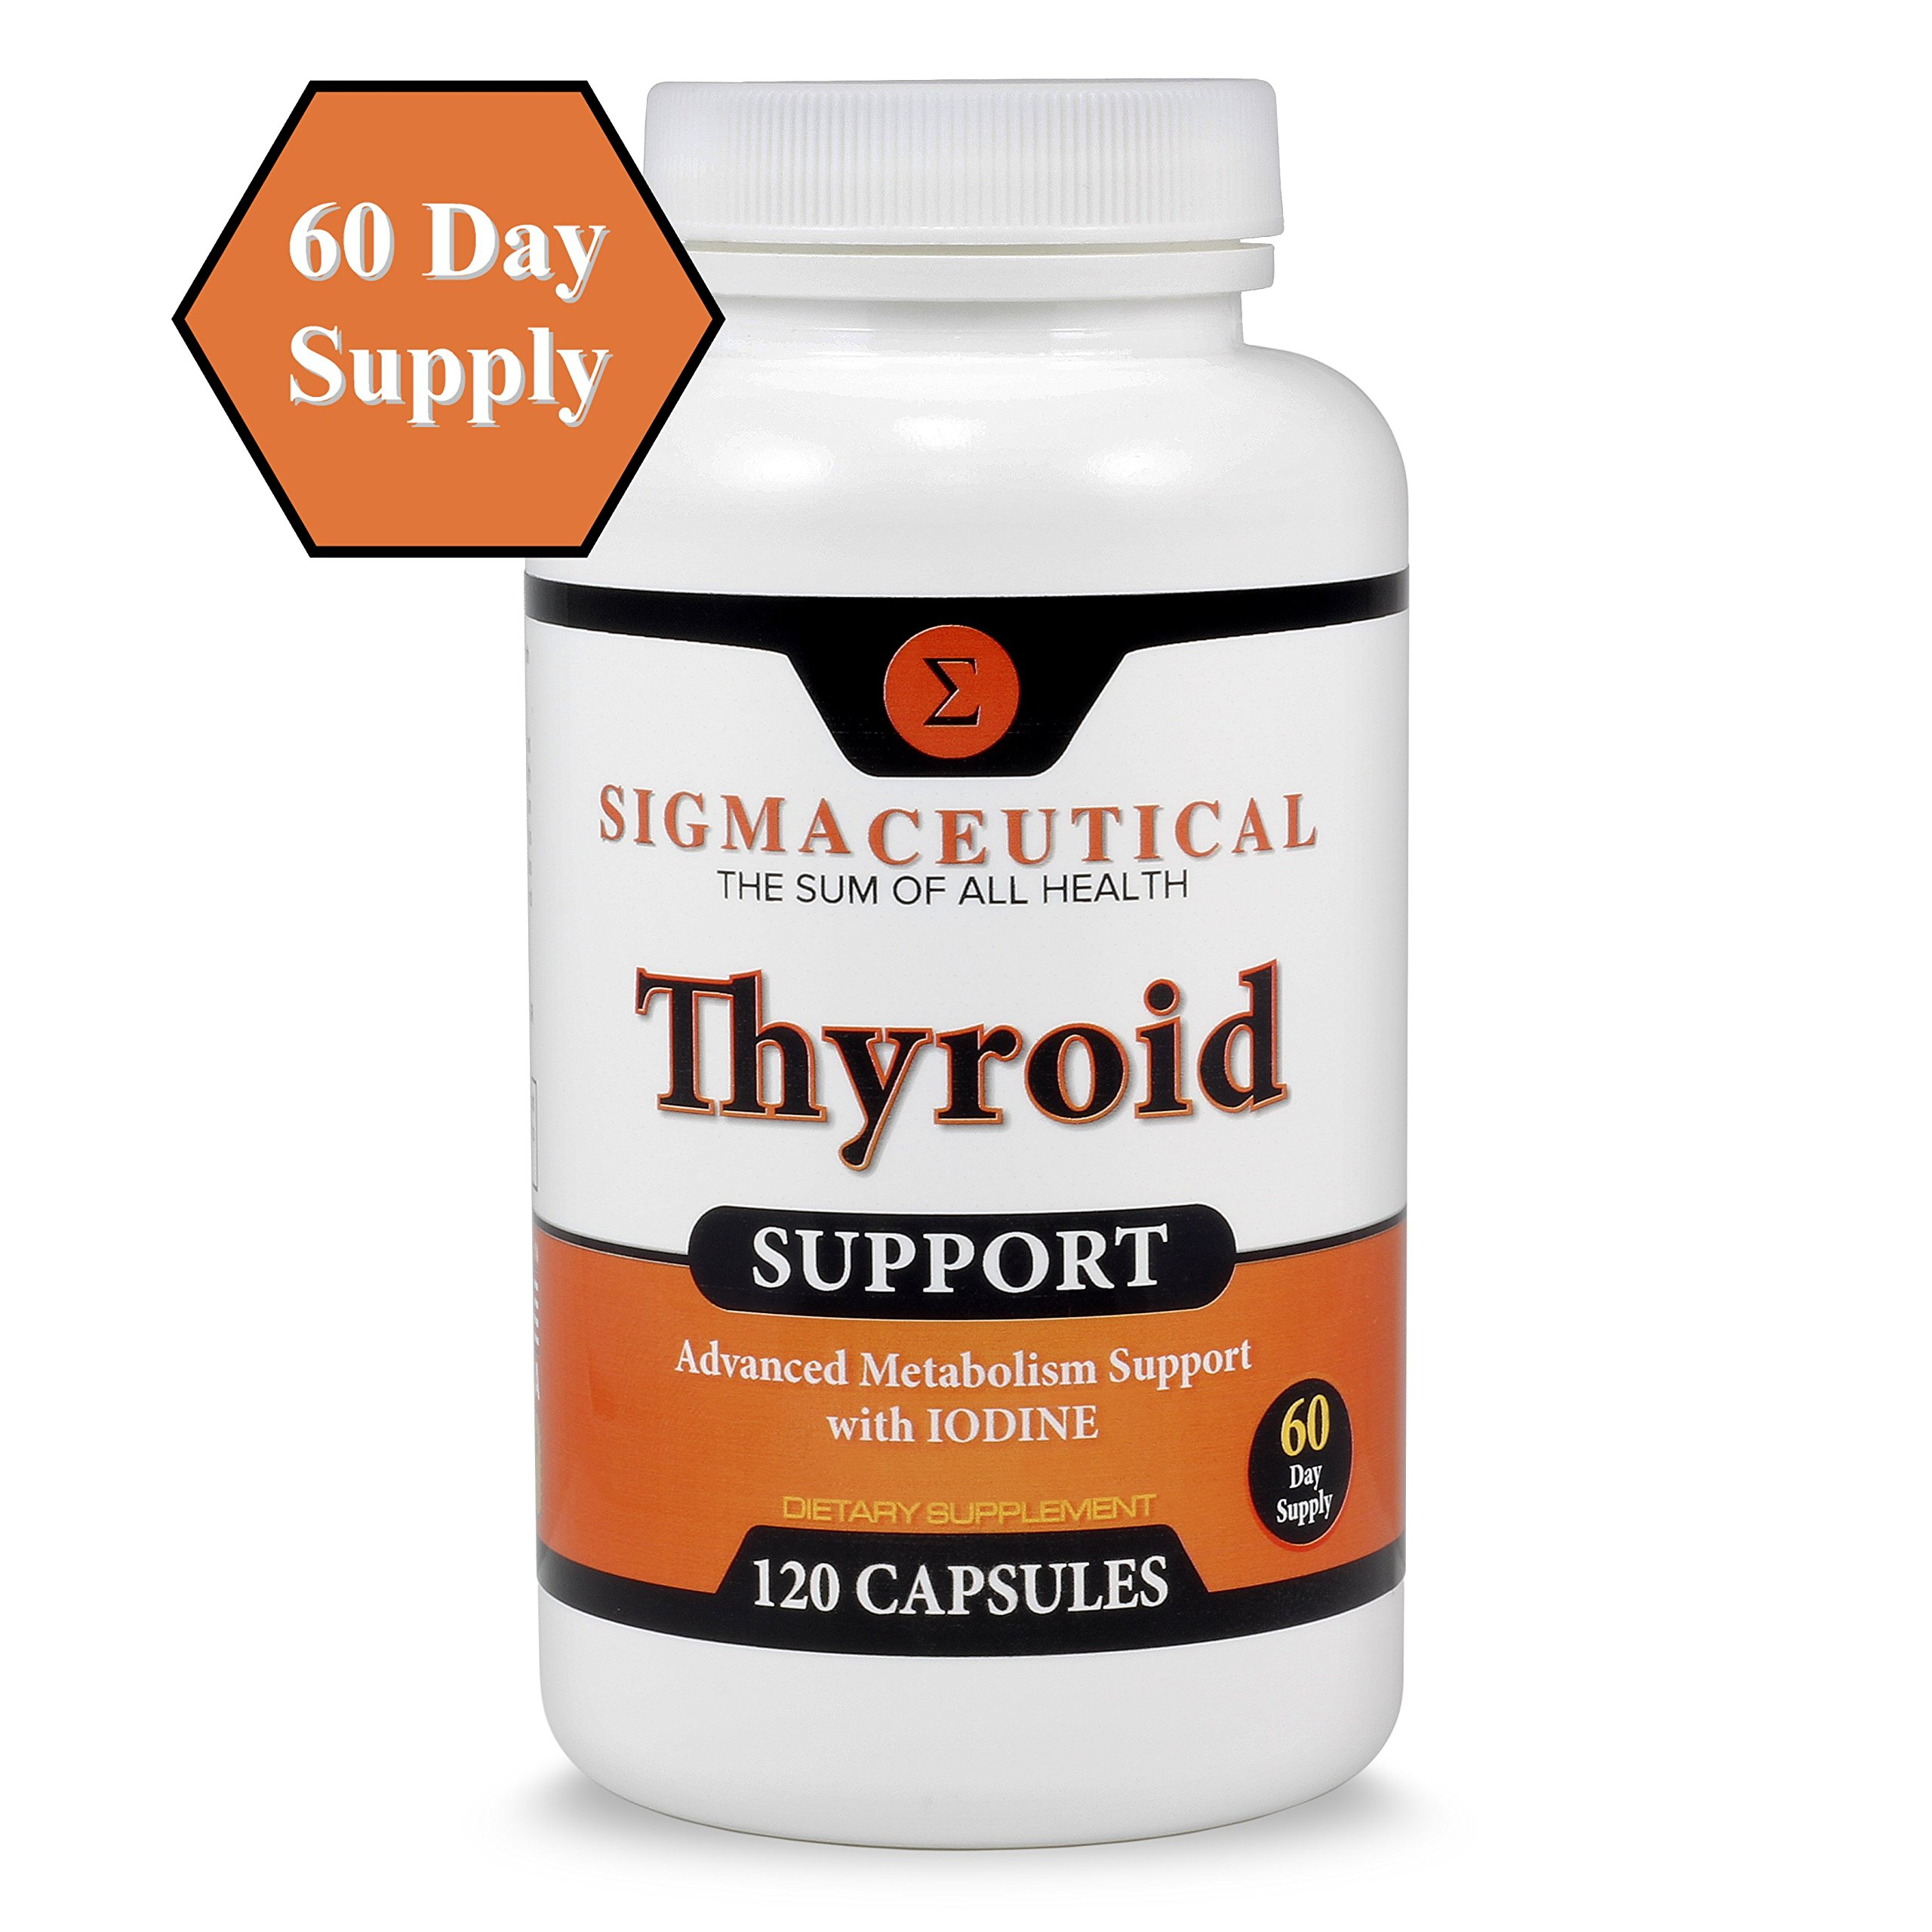 Thyroid Support Supplement - Iodine Supplement - Zinc & Selenium Supplement - Kelp Supplement - 120 Capsules by Sigmaceutical